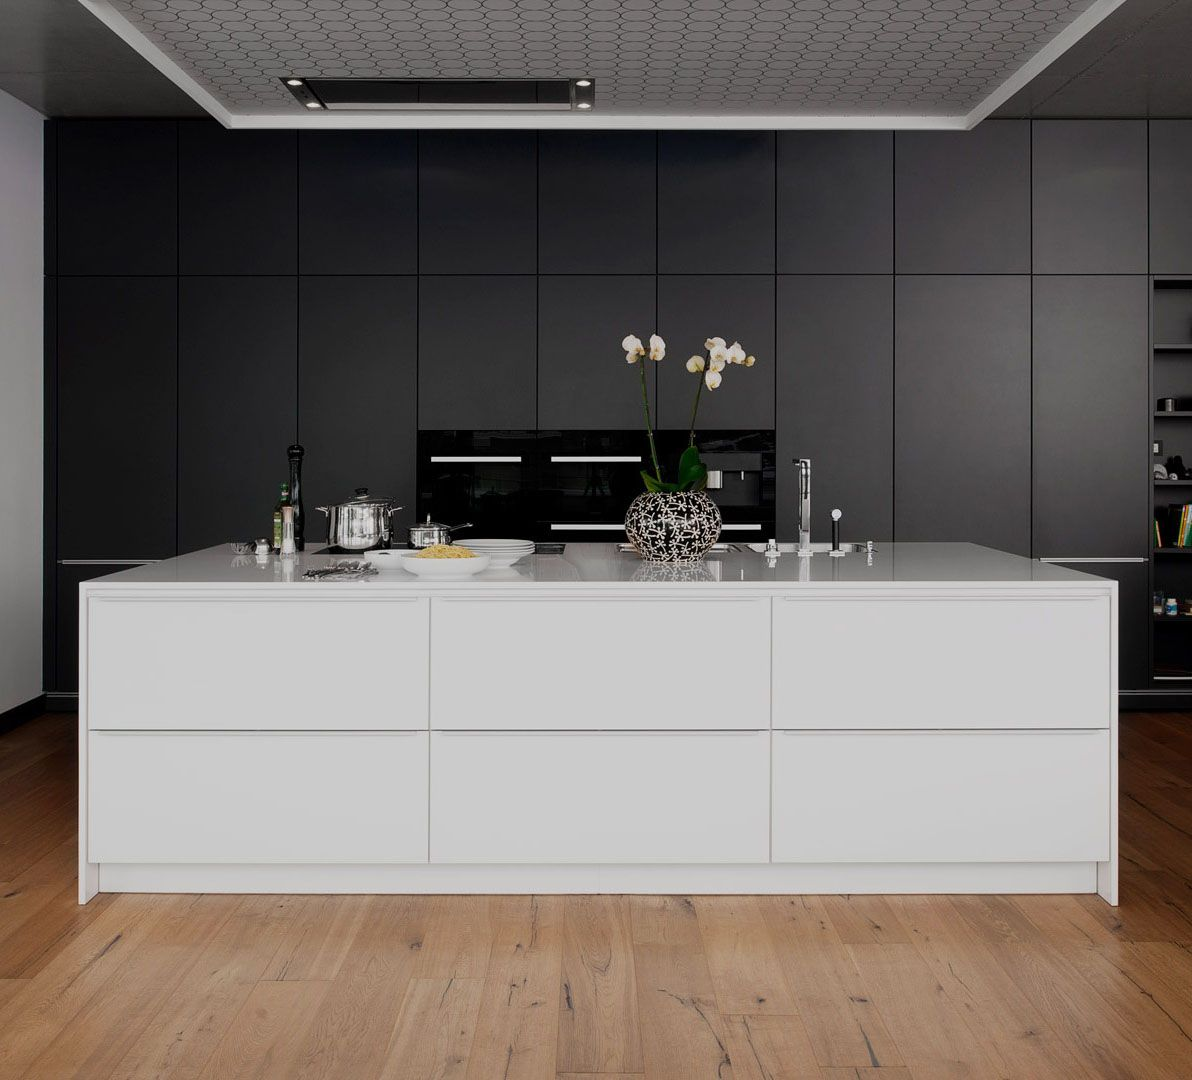 Kitchens by Poggenpohl  The multitude of individual kitchen